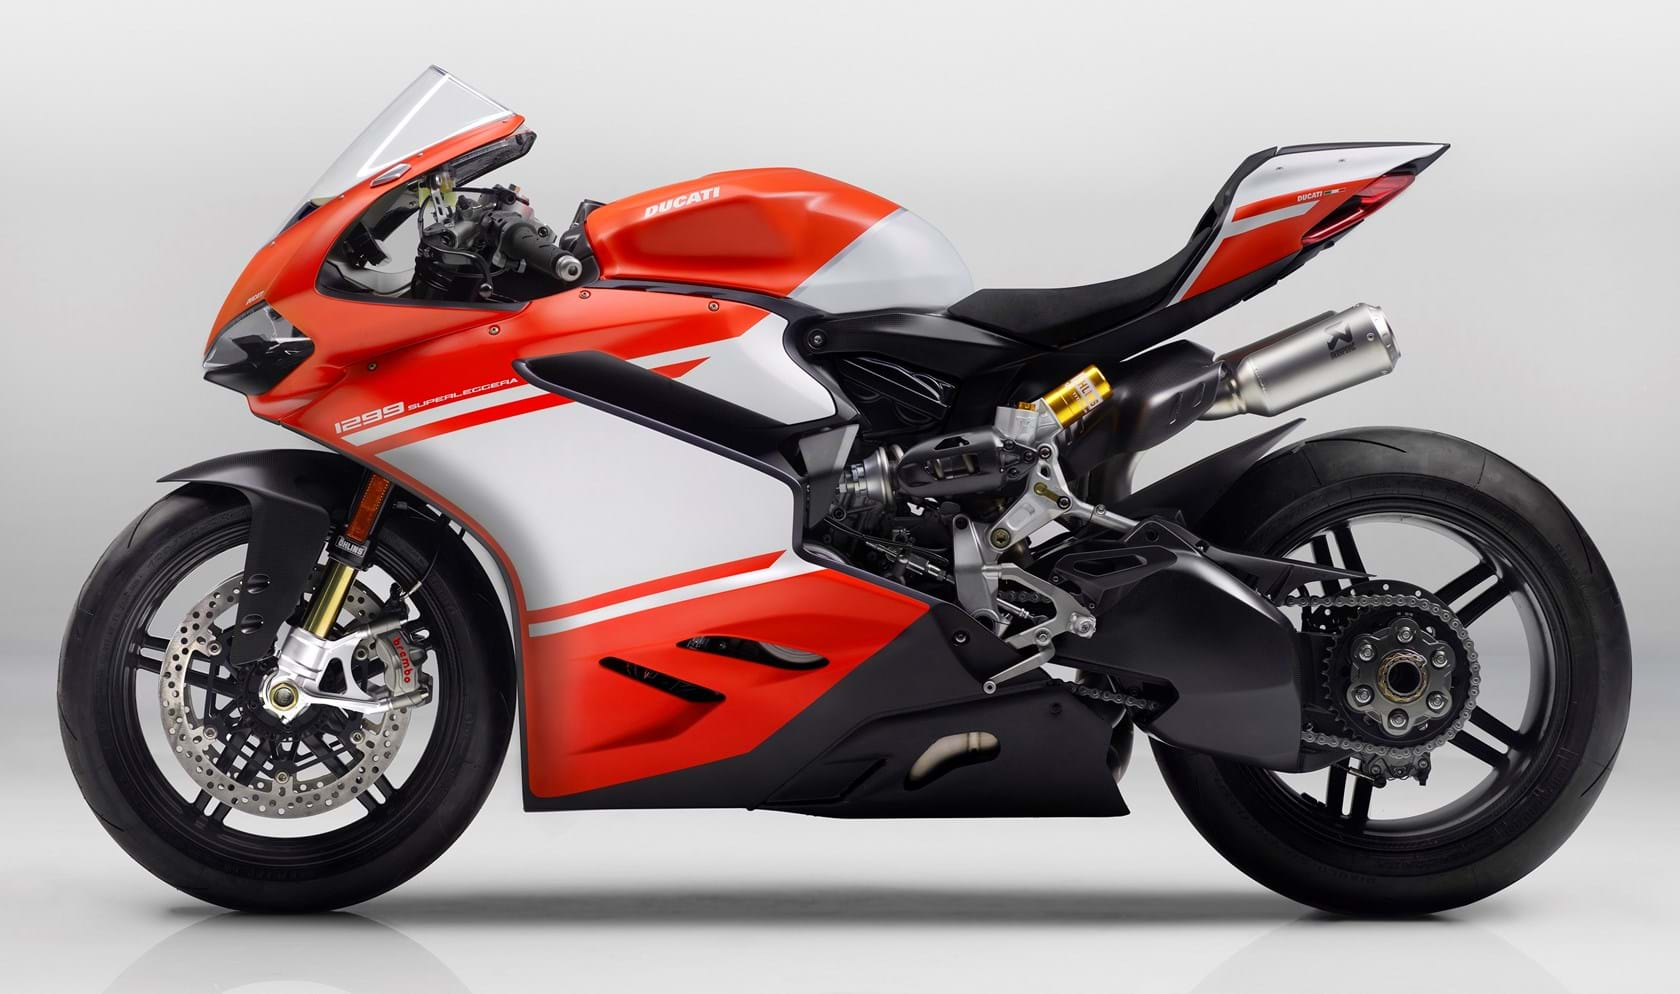 For Sale Ducati 1299 Superleggera The Bike Market